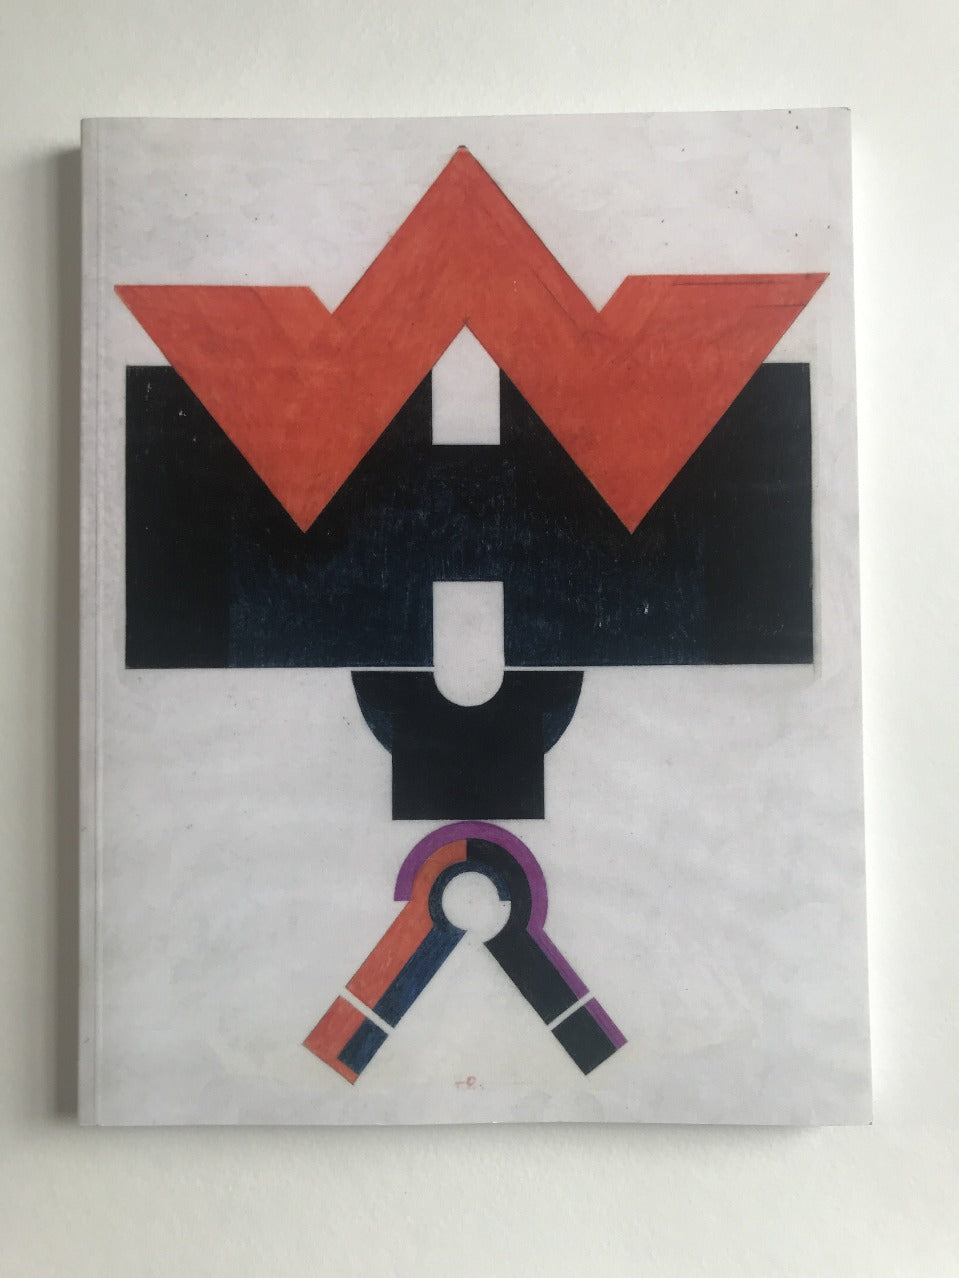 WHY? WHY NOT? - Barbara Stauffacher Solomon.